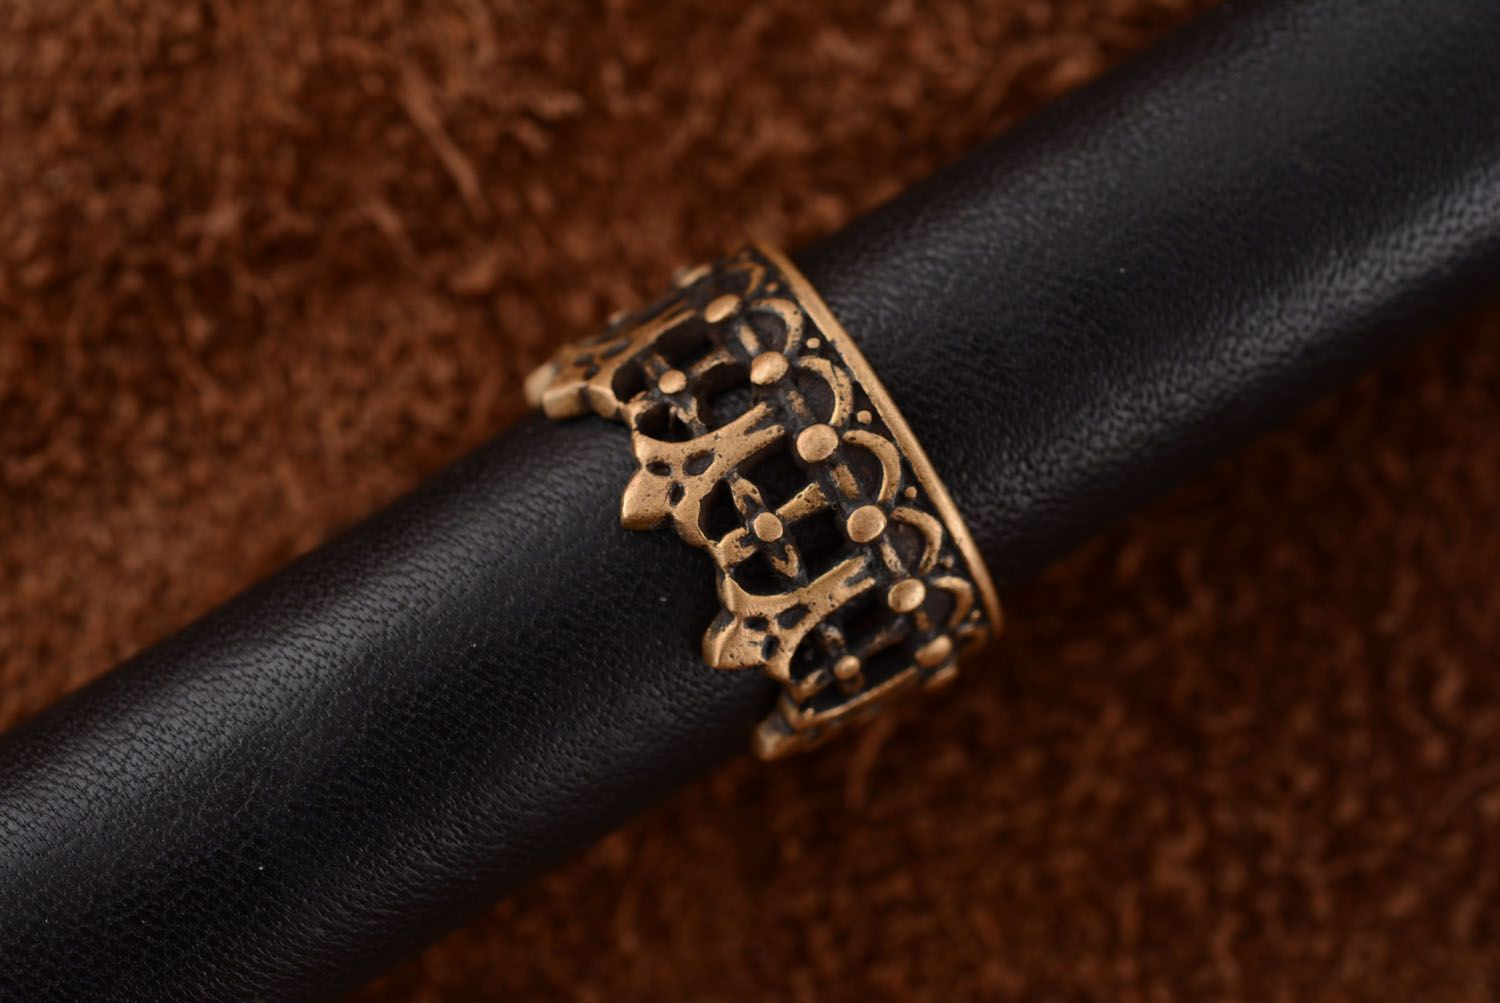 Crown-shaped bronze ring photo 3